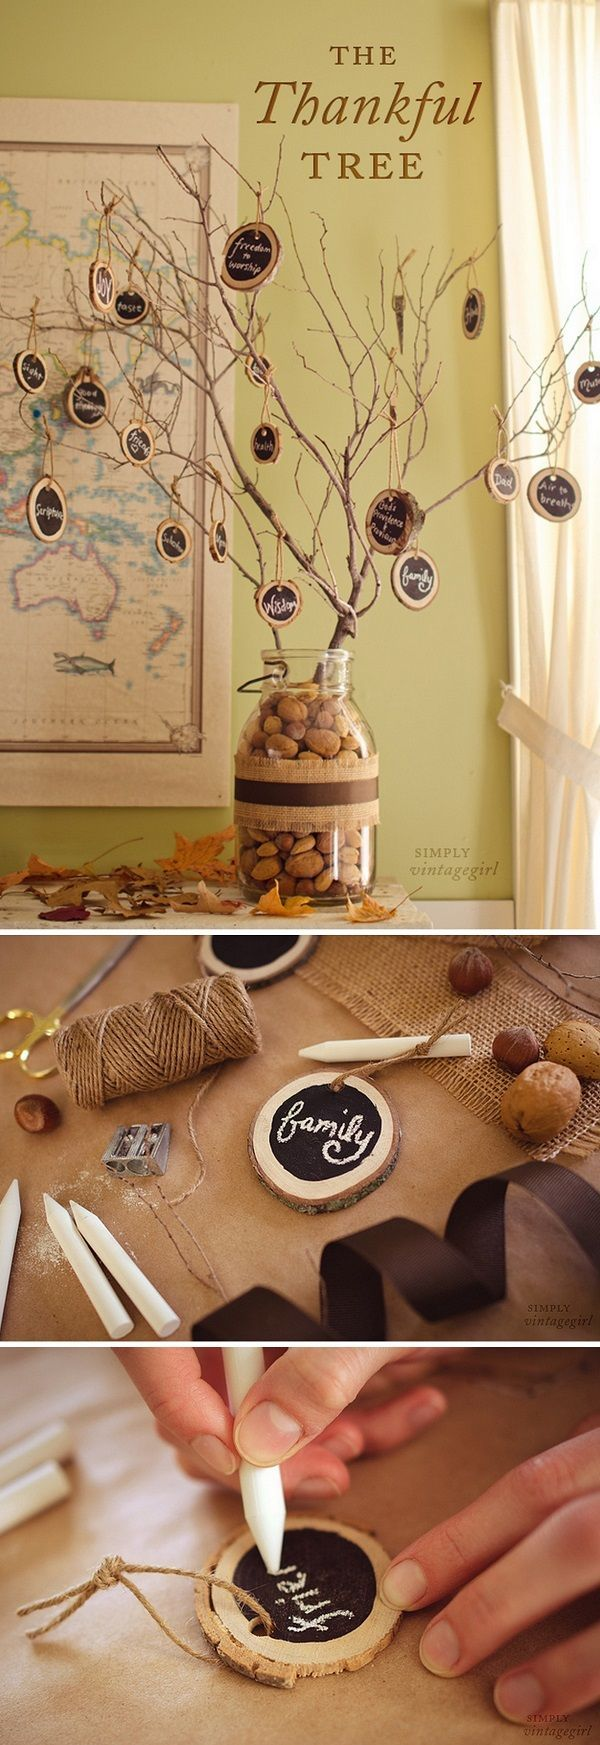 You'd like to decorate your Thanksgiving table, but do not have any idea how? Everyone loves to decorate their homes to prepare for the special occasion and make it more special for the family. Thanksgiving is not only about dinner, it is also about decorating the table and the room to create a pleasant experience.